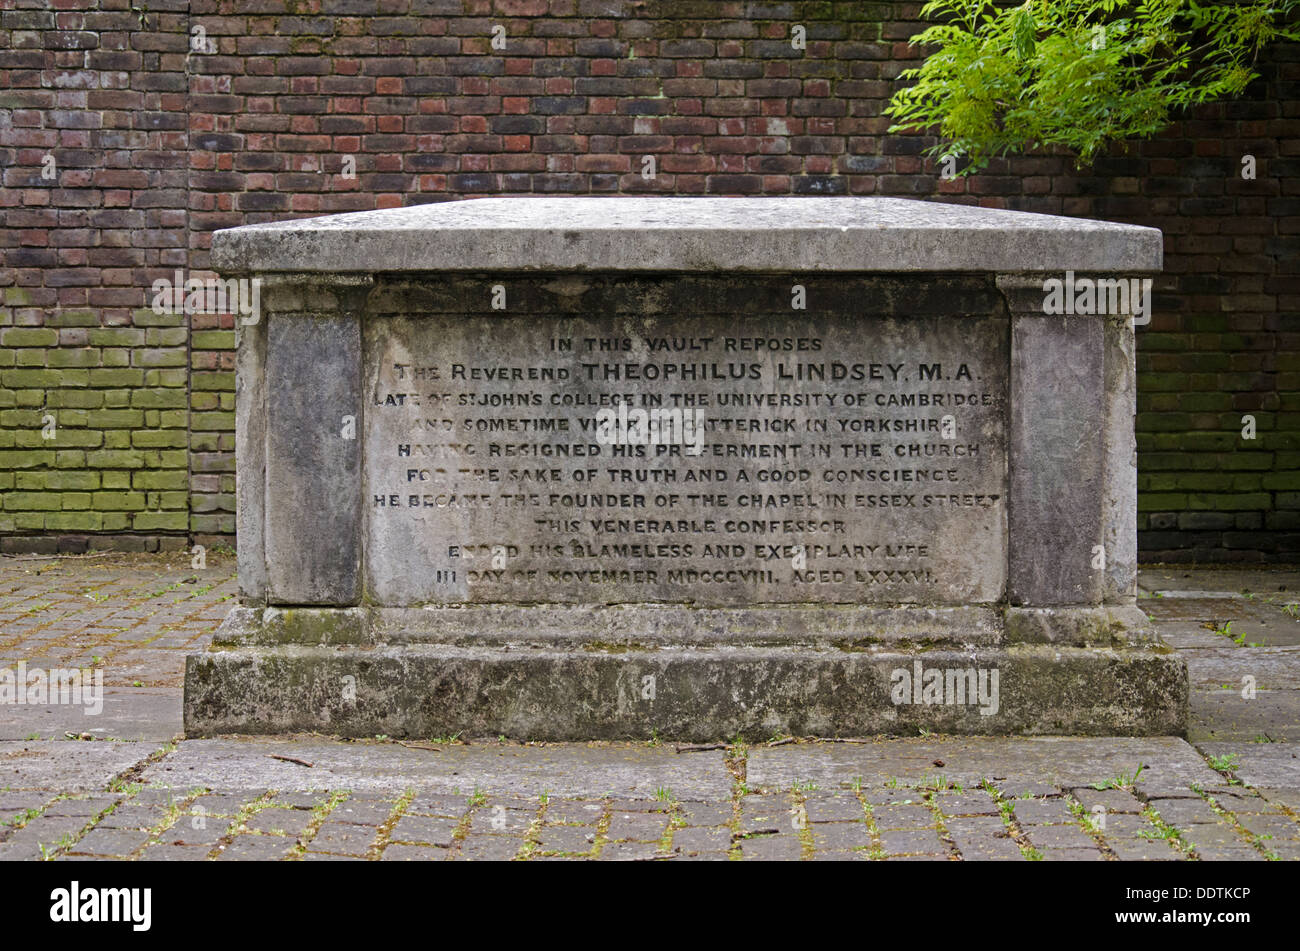 The grave of Theophilus Lindsey (1723-1808) in Bunhill Fields Burial Ground. - Stock Image